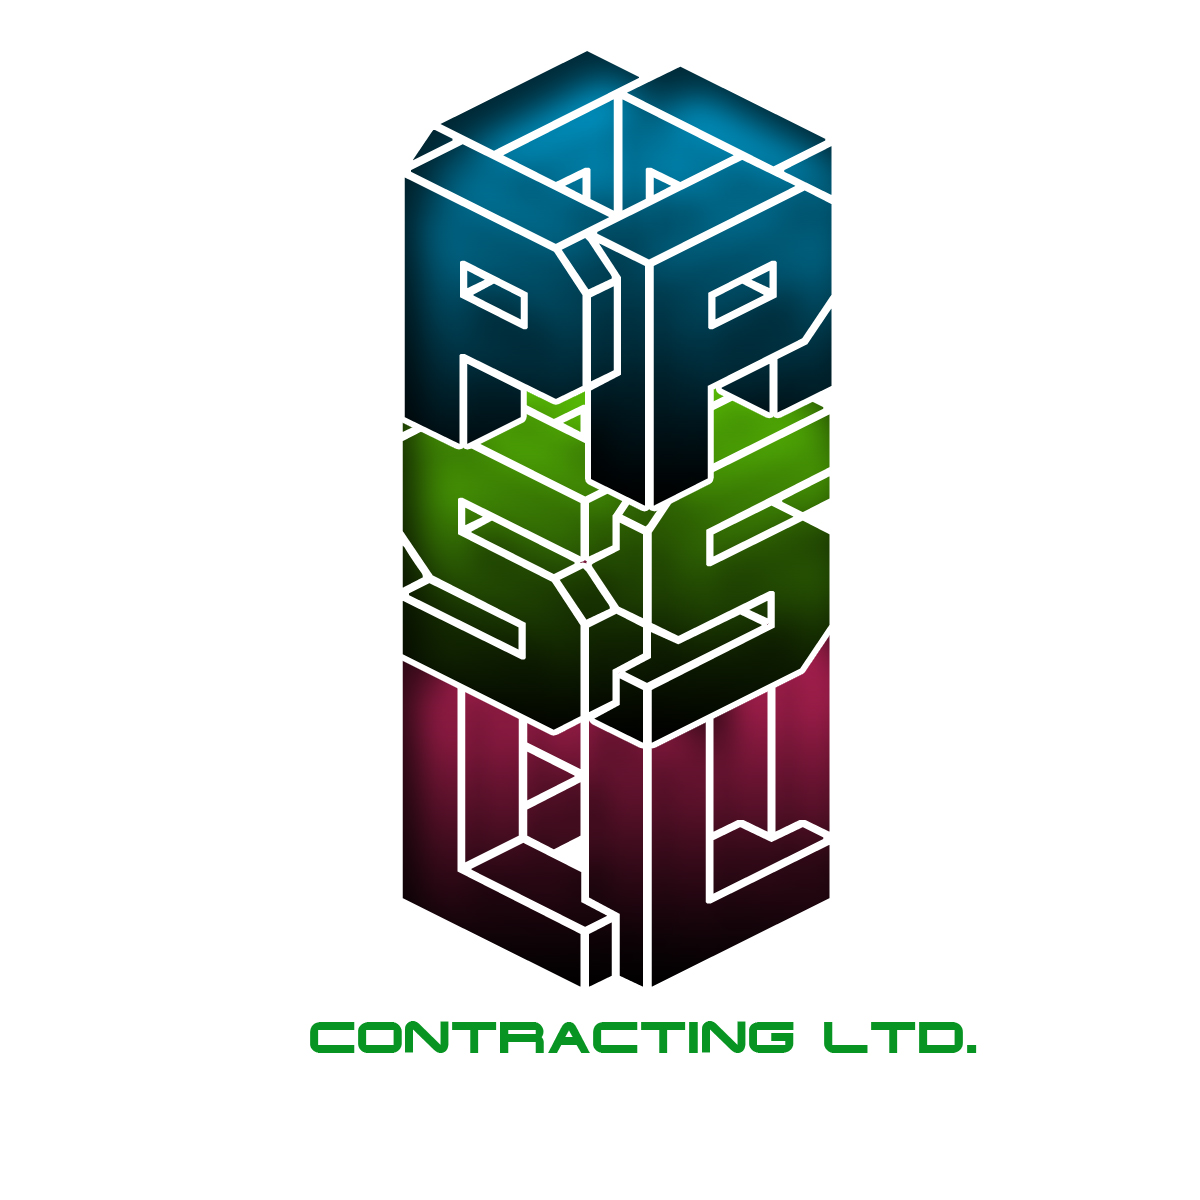 Logo Design by Viral Ramani - Entry No. 56 in the Logo Design Contest PSL Contracting (2008) Ltd. Logo Design.